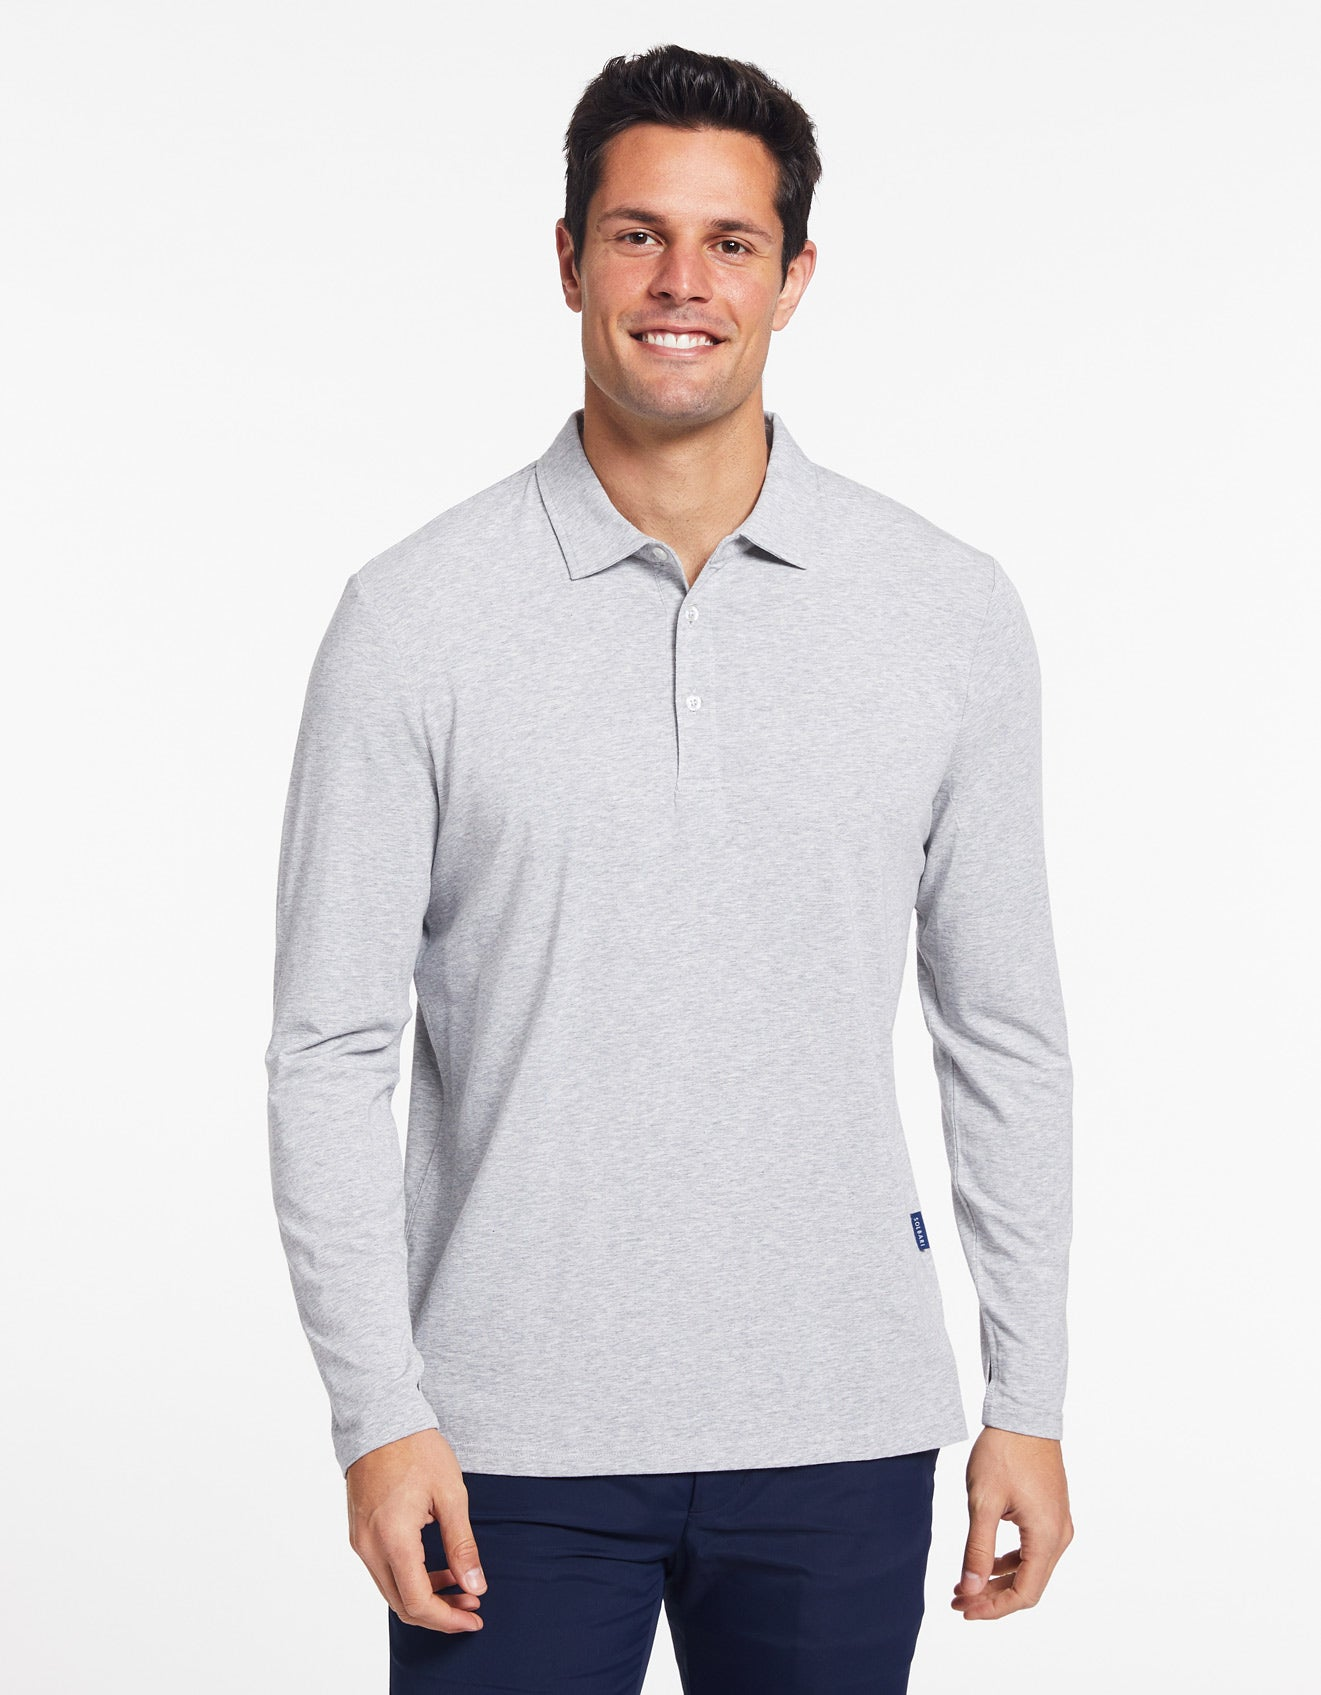 Solbari Sun Protection Men's UPF50+ Long Sleeve Polo in Light Grey Marle Sensitive Collection